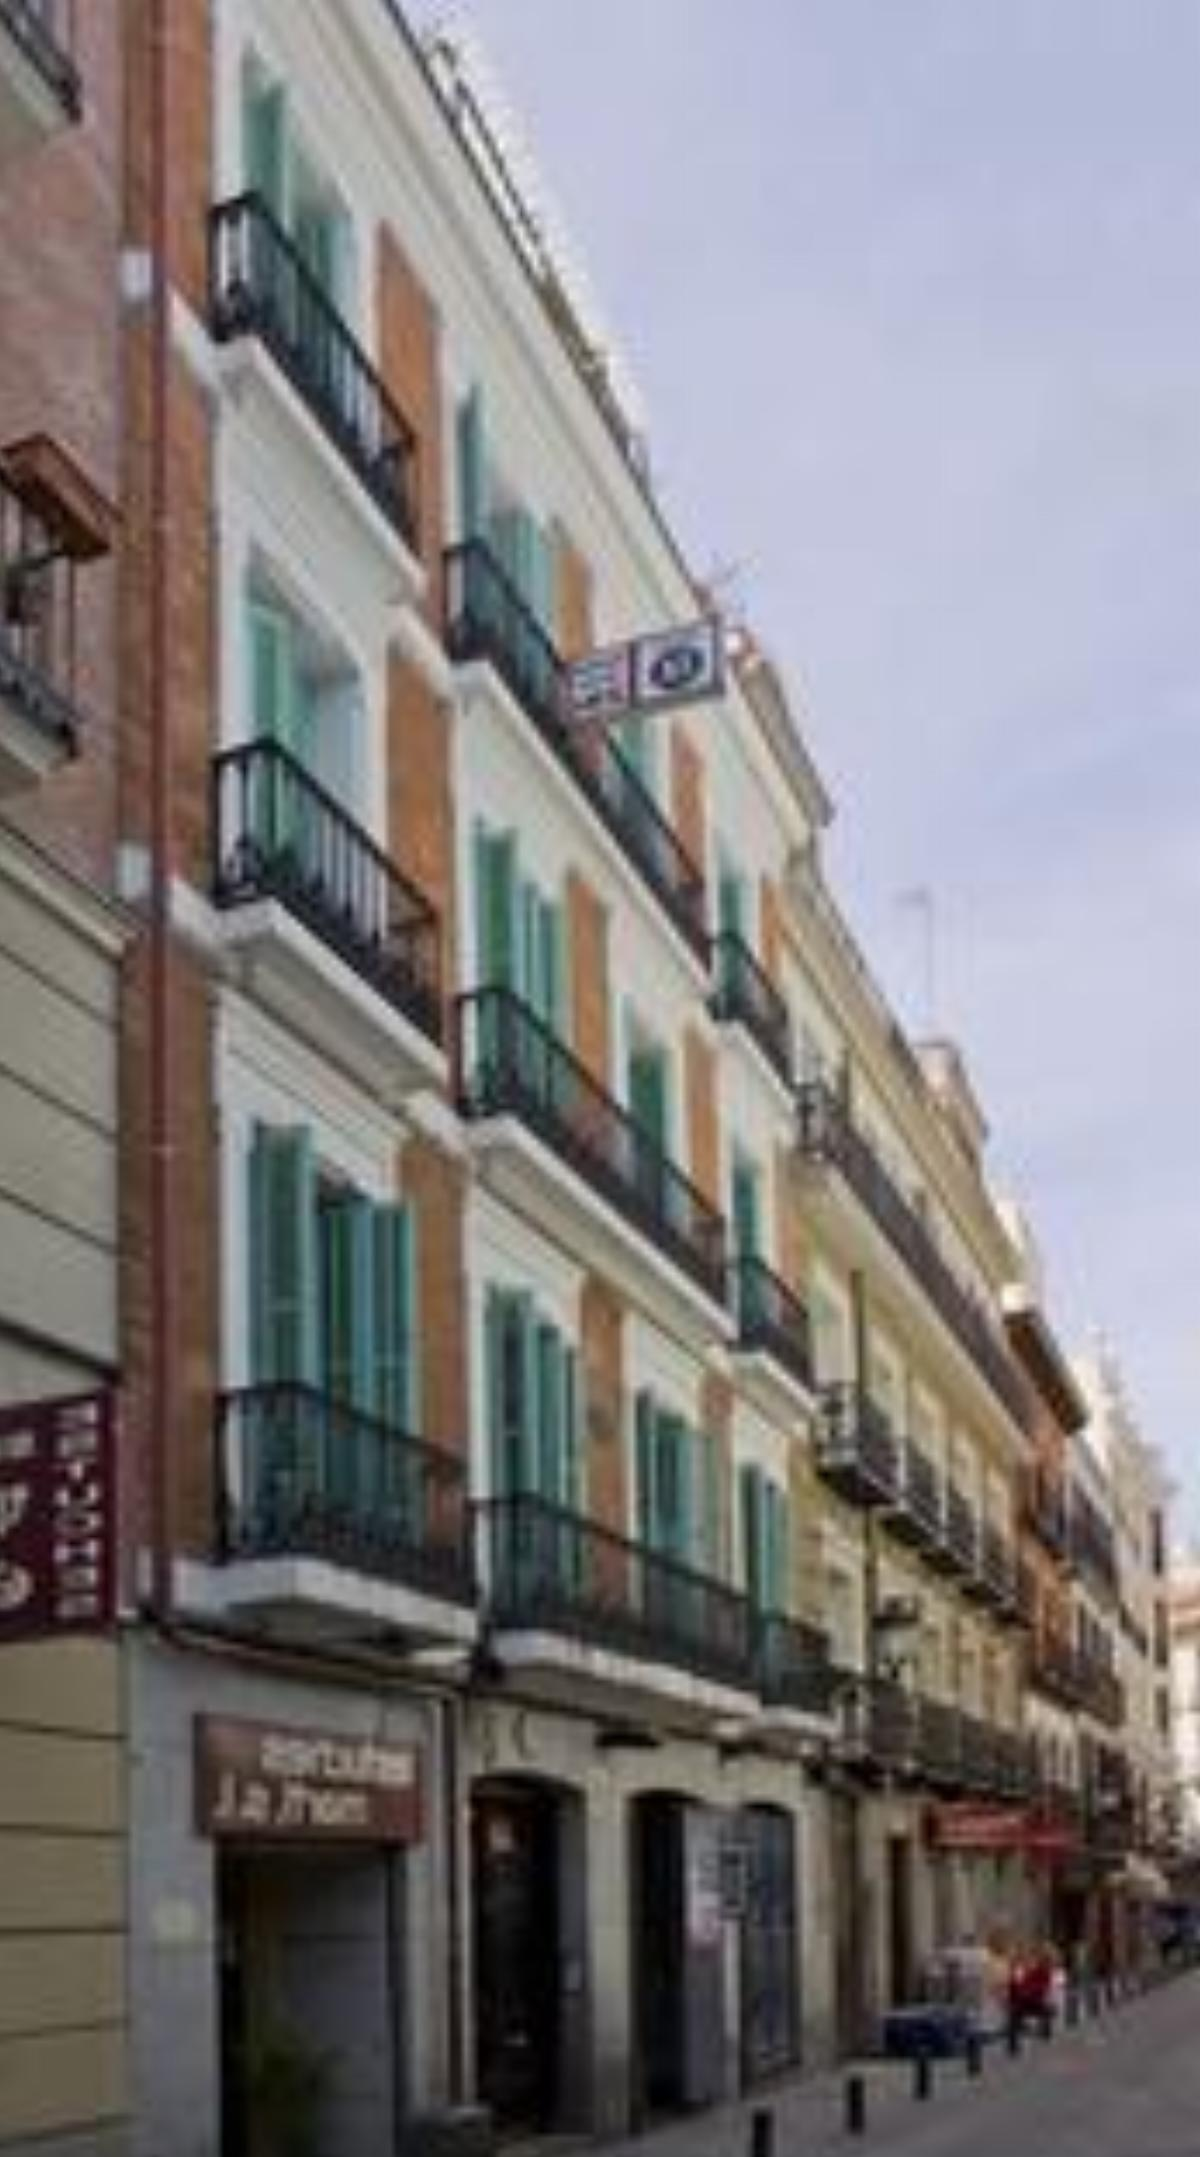 12 Rooms Hotel Madrid Spain